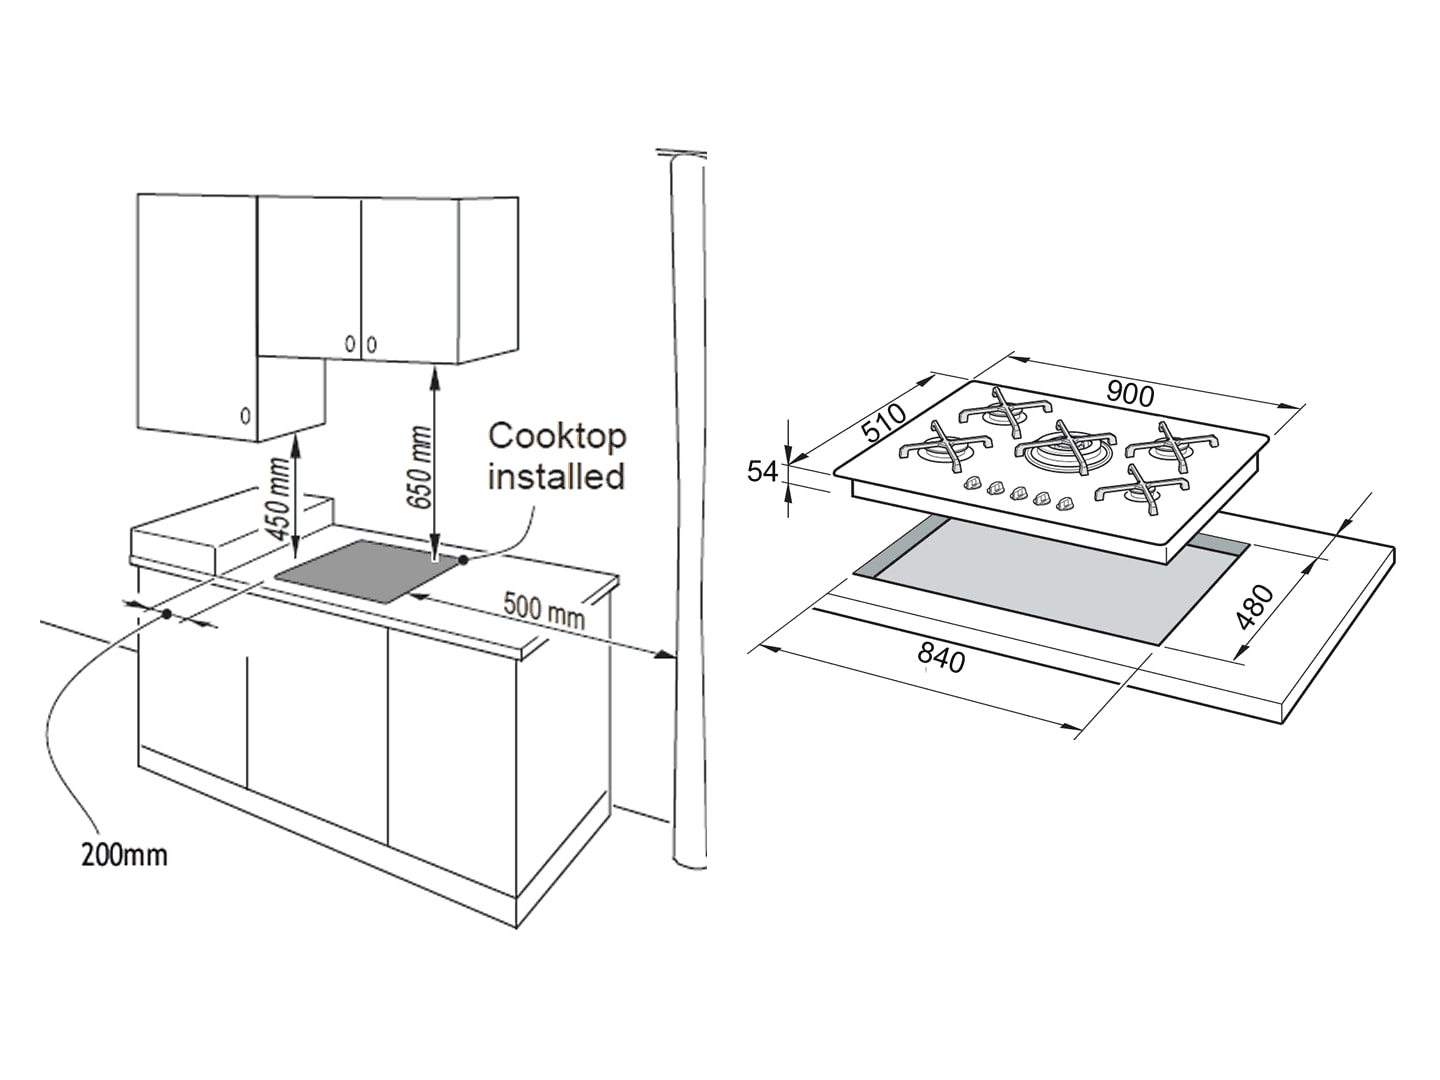 DeLonghi 90cm 5 Burner Electronic Gas on Glass Cooktop - DEGMATIK90 - Installation Diagram